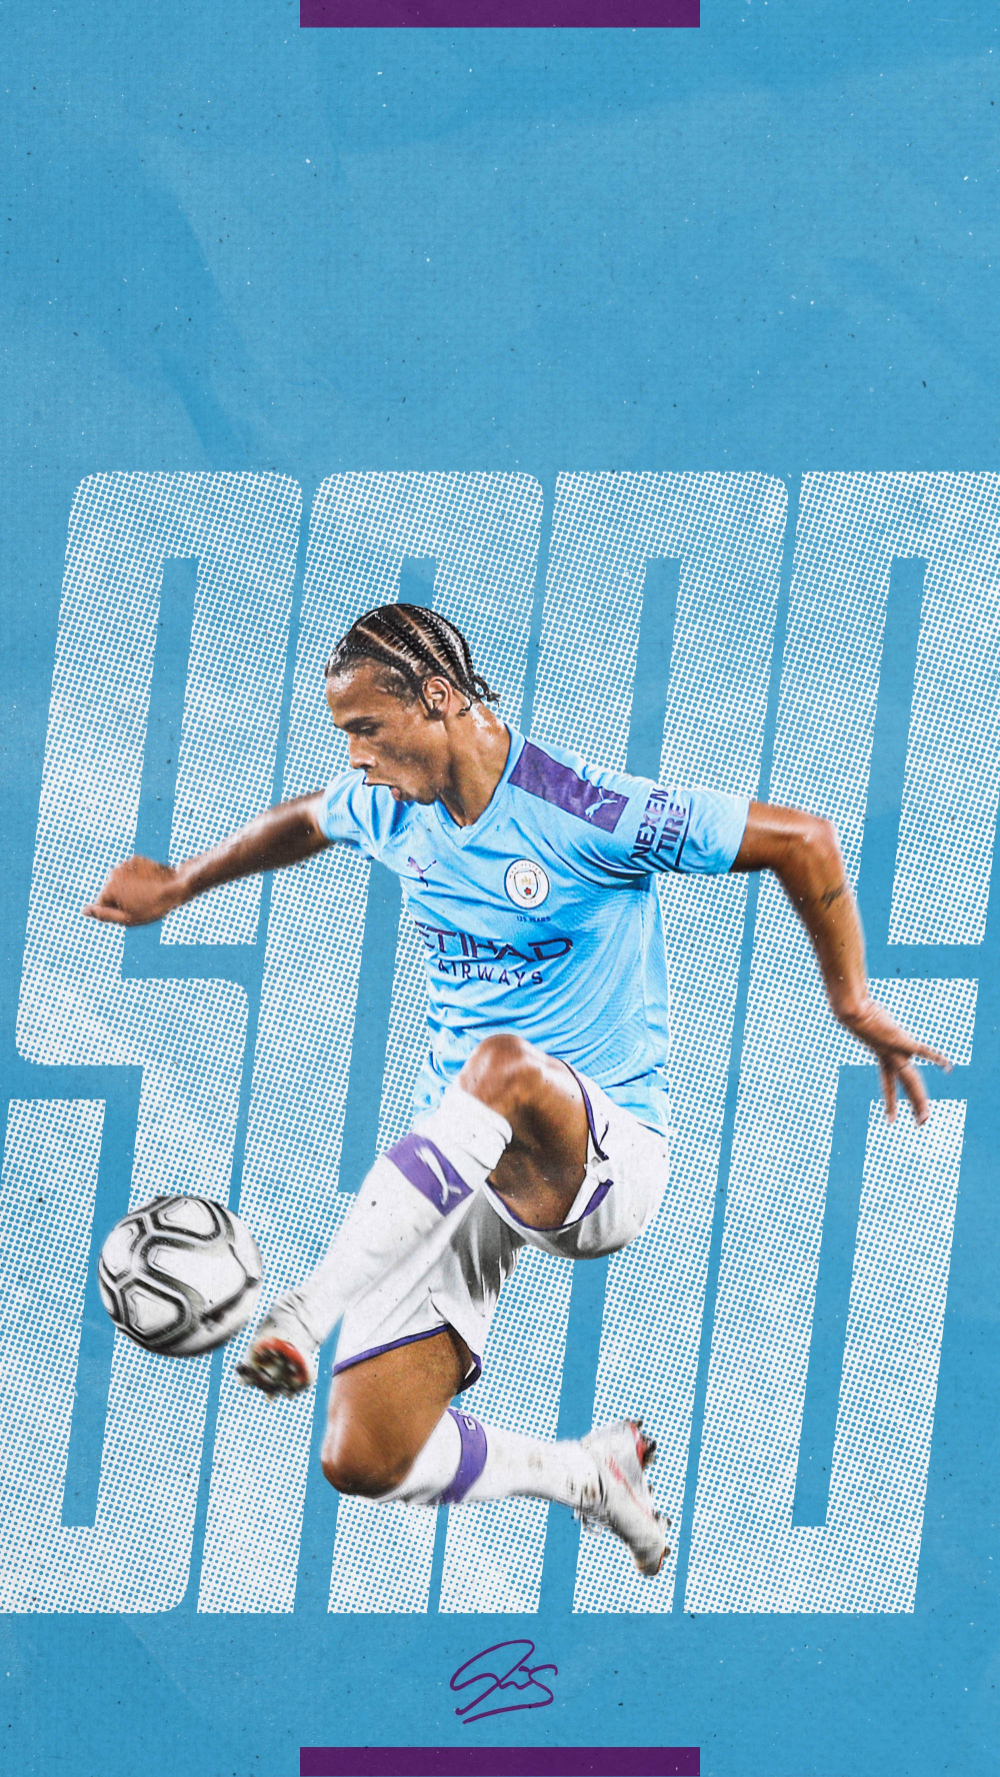 Manchester City On Twitter In 2020 Manchester City Soccer Pictures Football Artwork